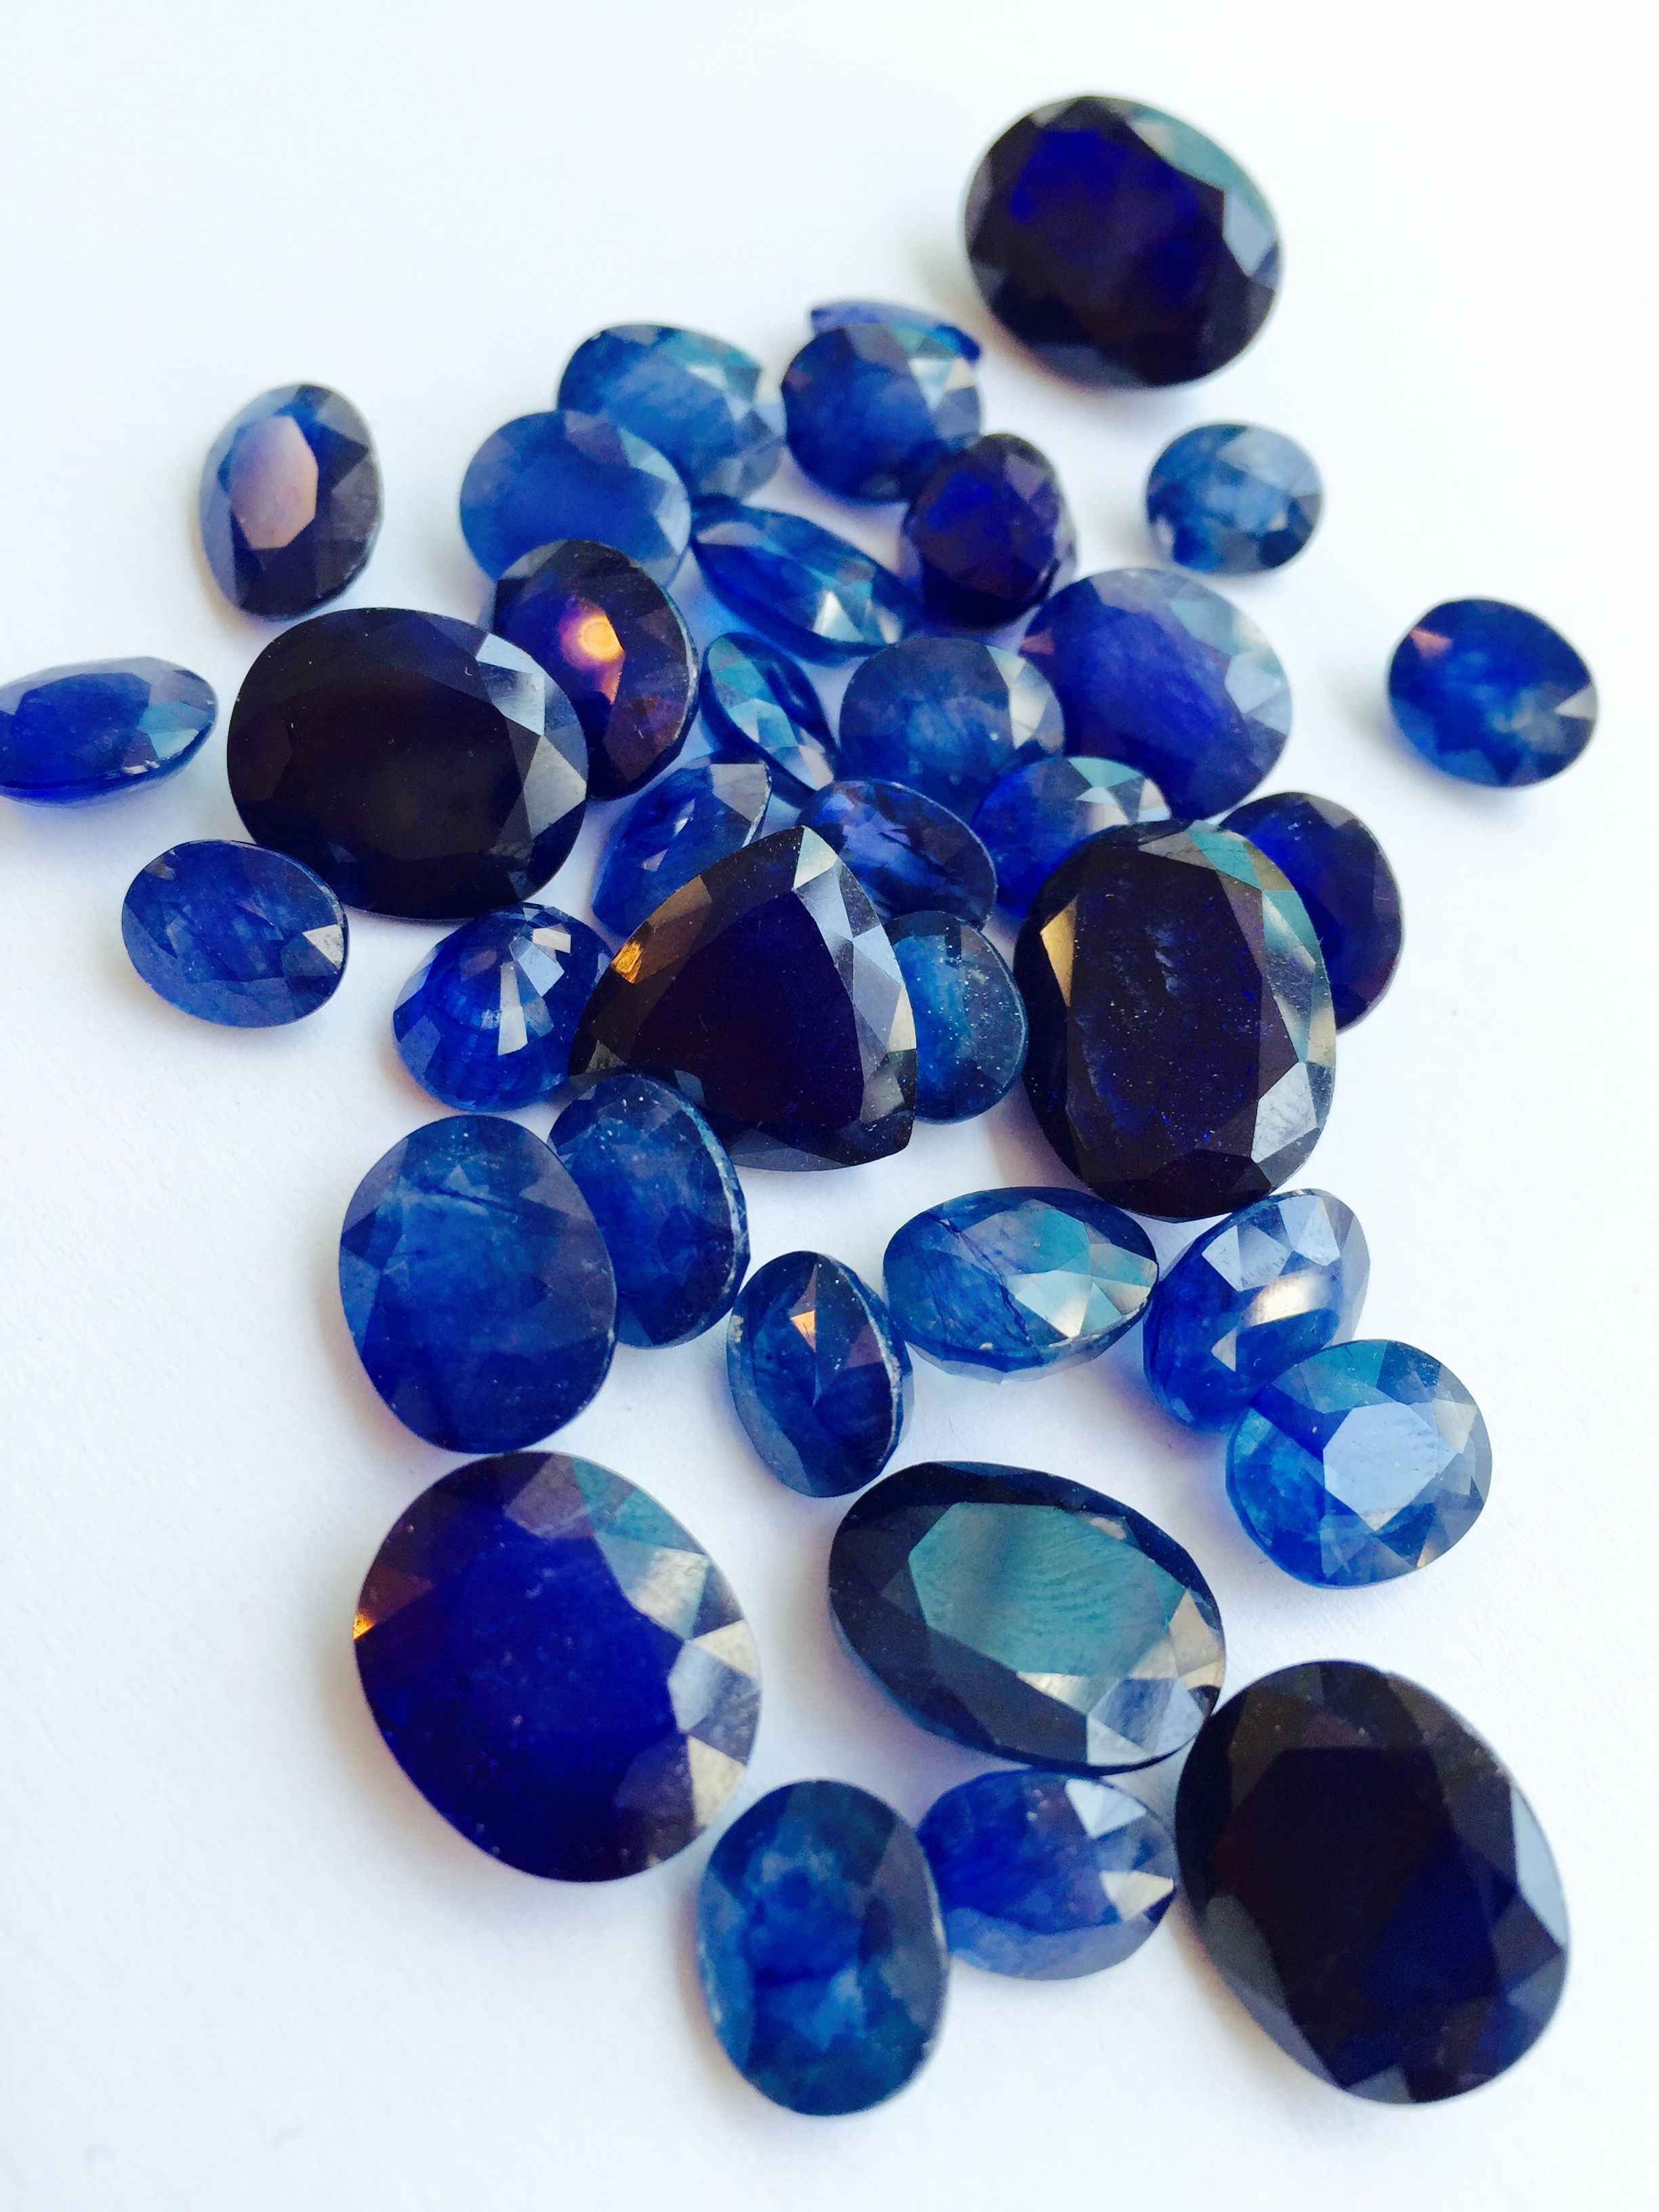 gemstones list learn sapphire you examples rock of gem know blue auctions with did es